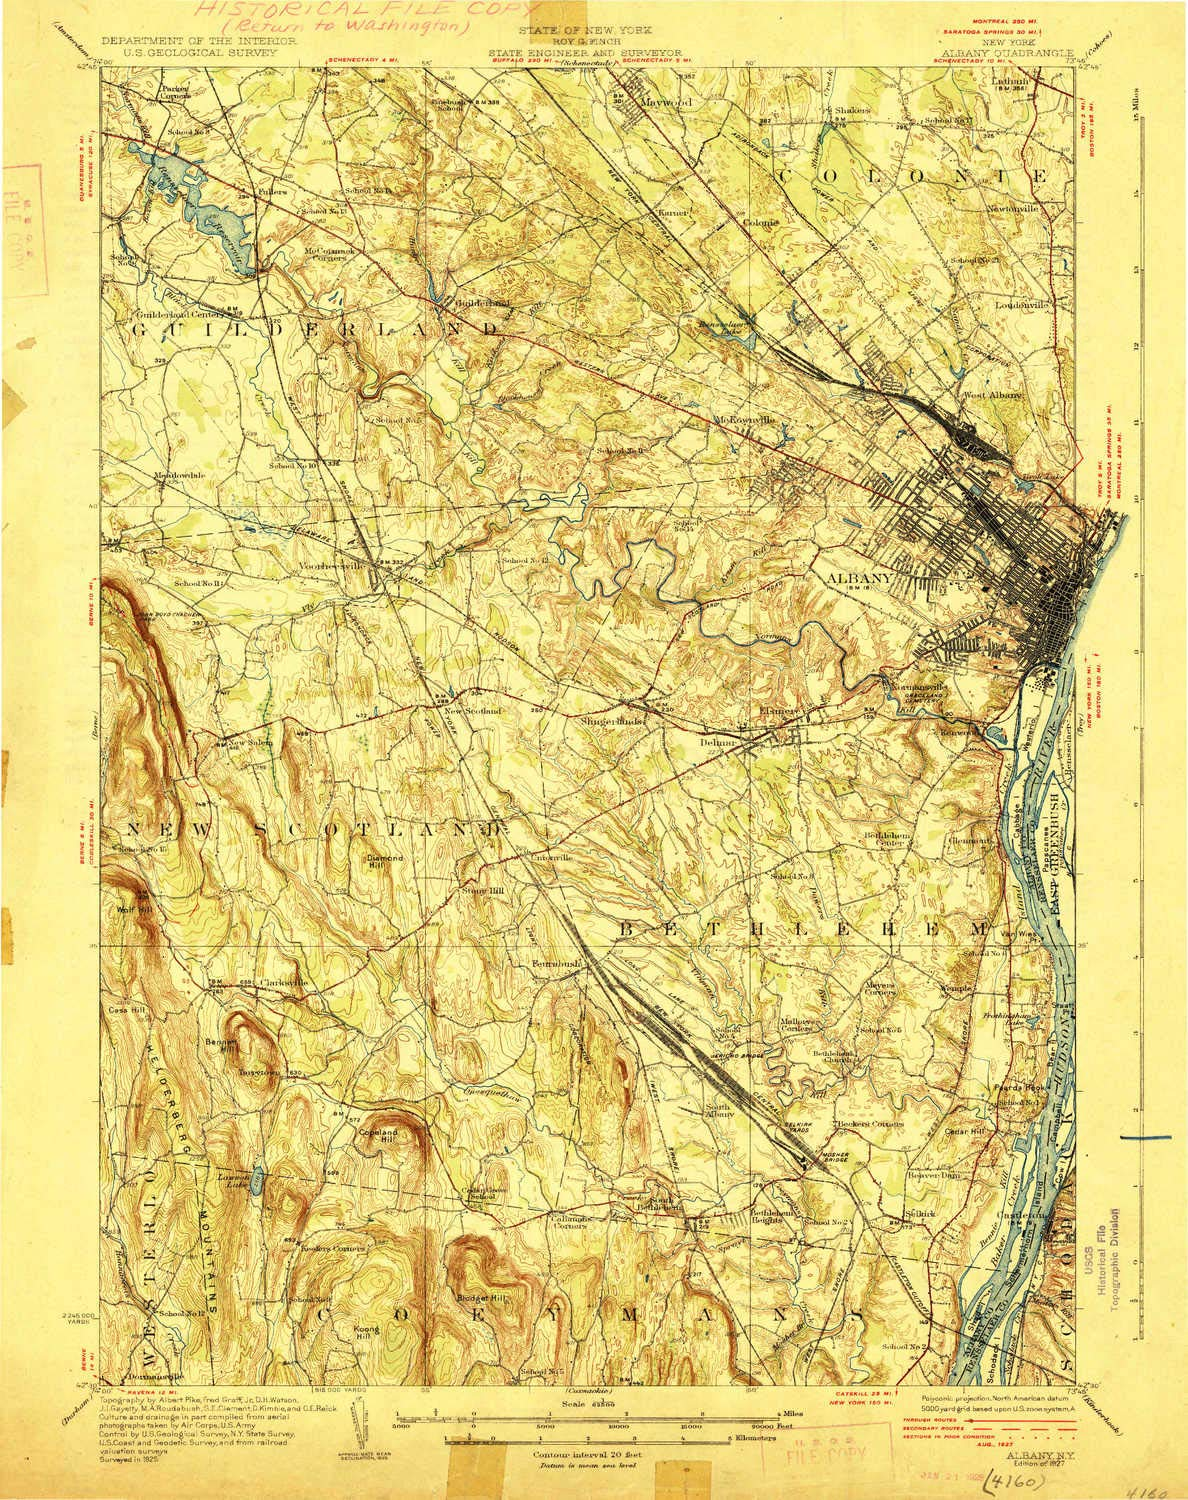 Amazon.com : YellowMaps Albany NY topo map, 1:62500 Scale ... on map of cohoes new york, map of brooklyn new york, map of niagara falls new york, map of bronx new york, map of westchester new york, map of latham new york, map of watertown new york, map of santa fe new mexico, map of new york weather, map of cooperstown new york, map of dobbs ferry new york, map of new york state, map of newburgh new york, map of canandaigua new york, map of glens falls new york, map of troy new york, map of malone new york, map of schenectady new york, map of owego new york, map of alfred new york,